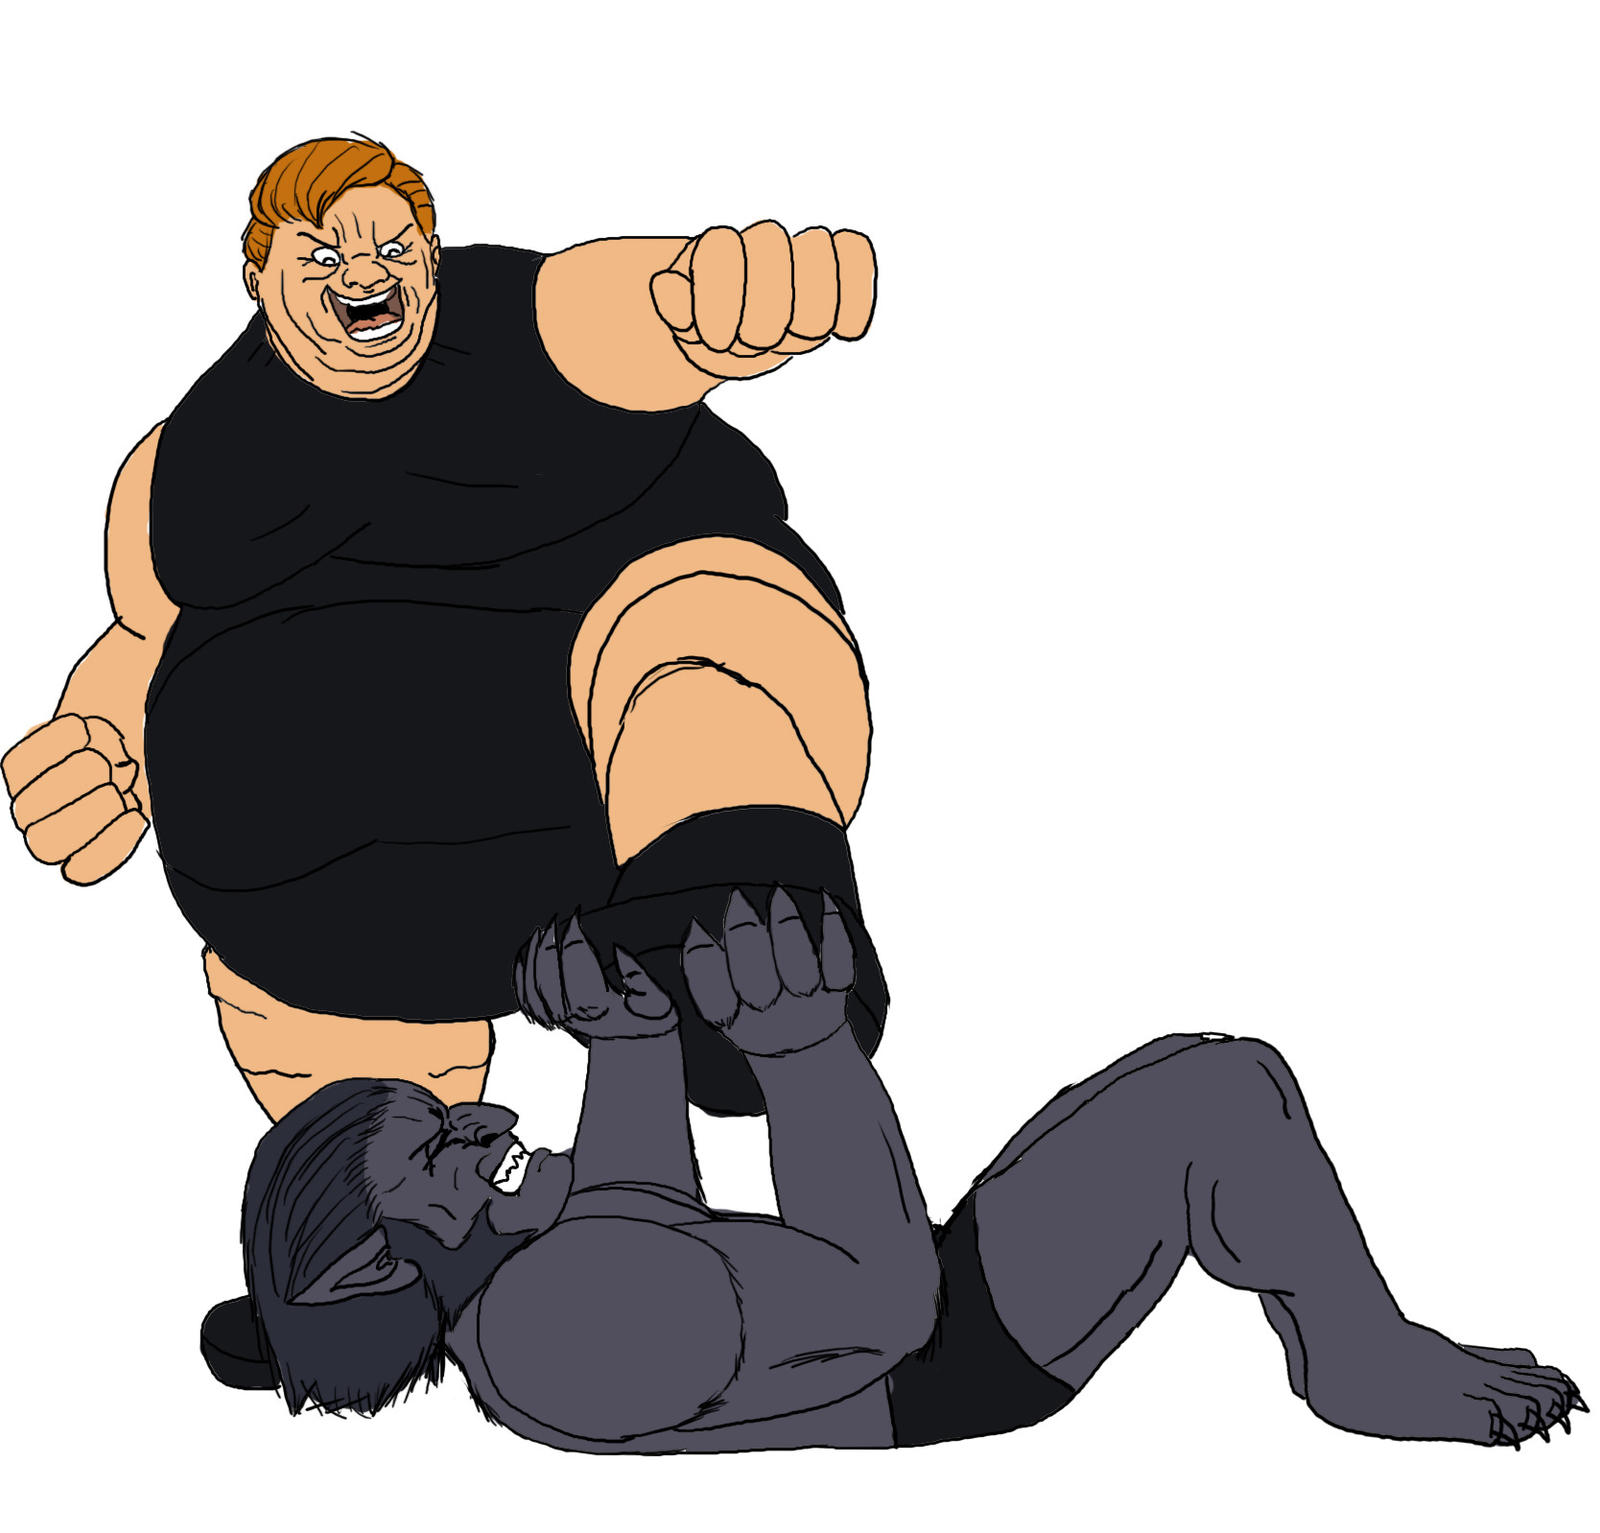 The Blob Stomps On The Beast by Big-Ogre